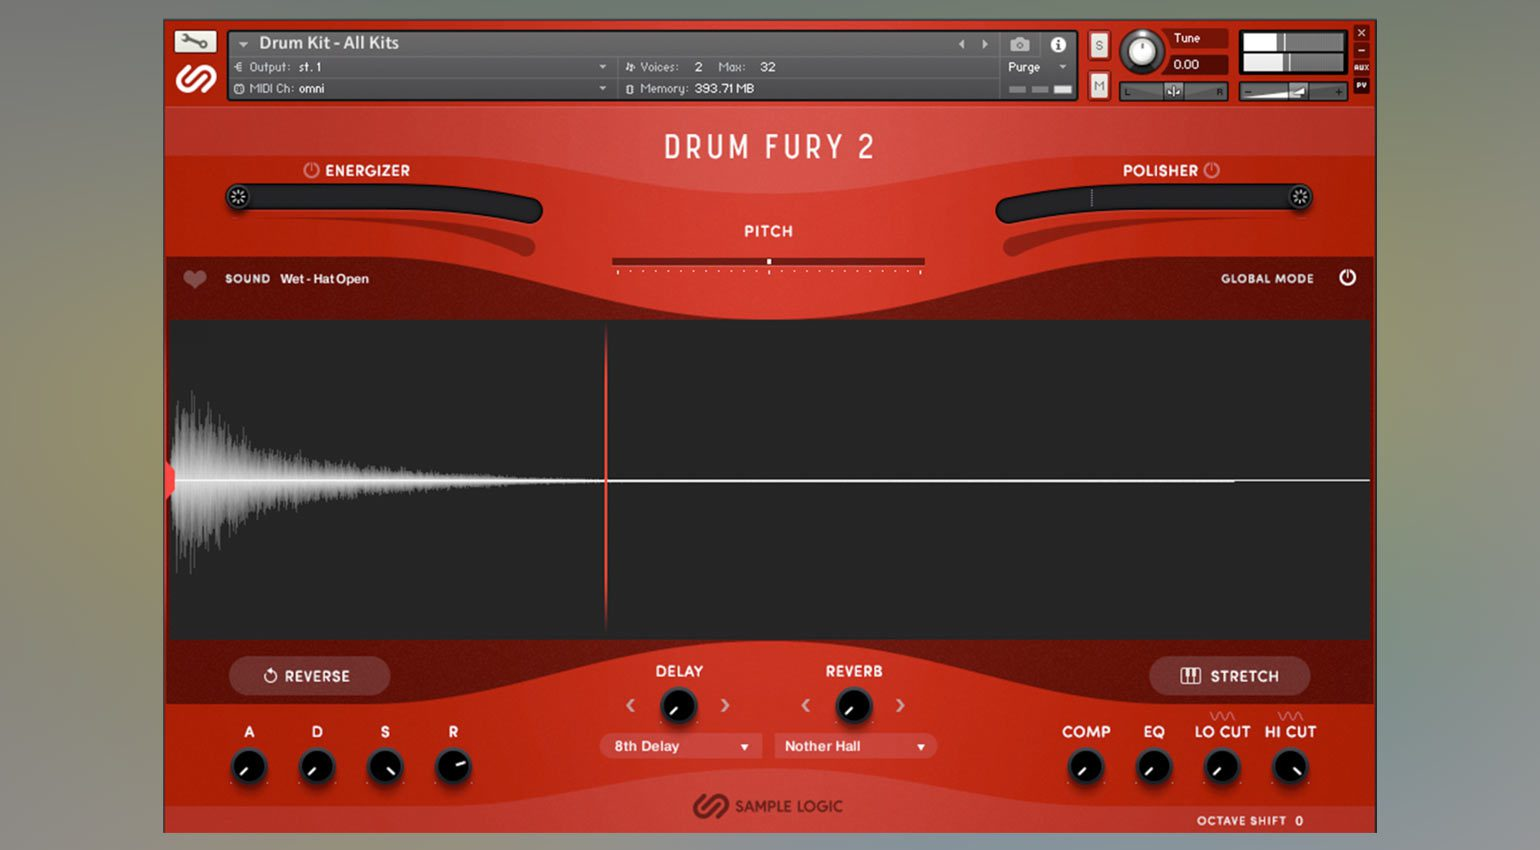 Sample Logic Drum Fury 2